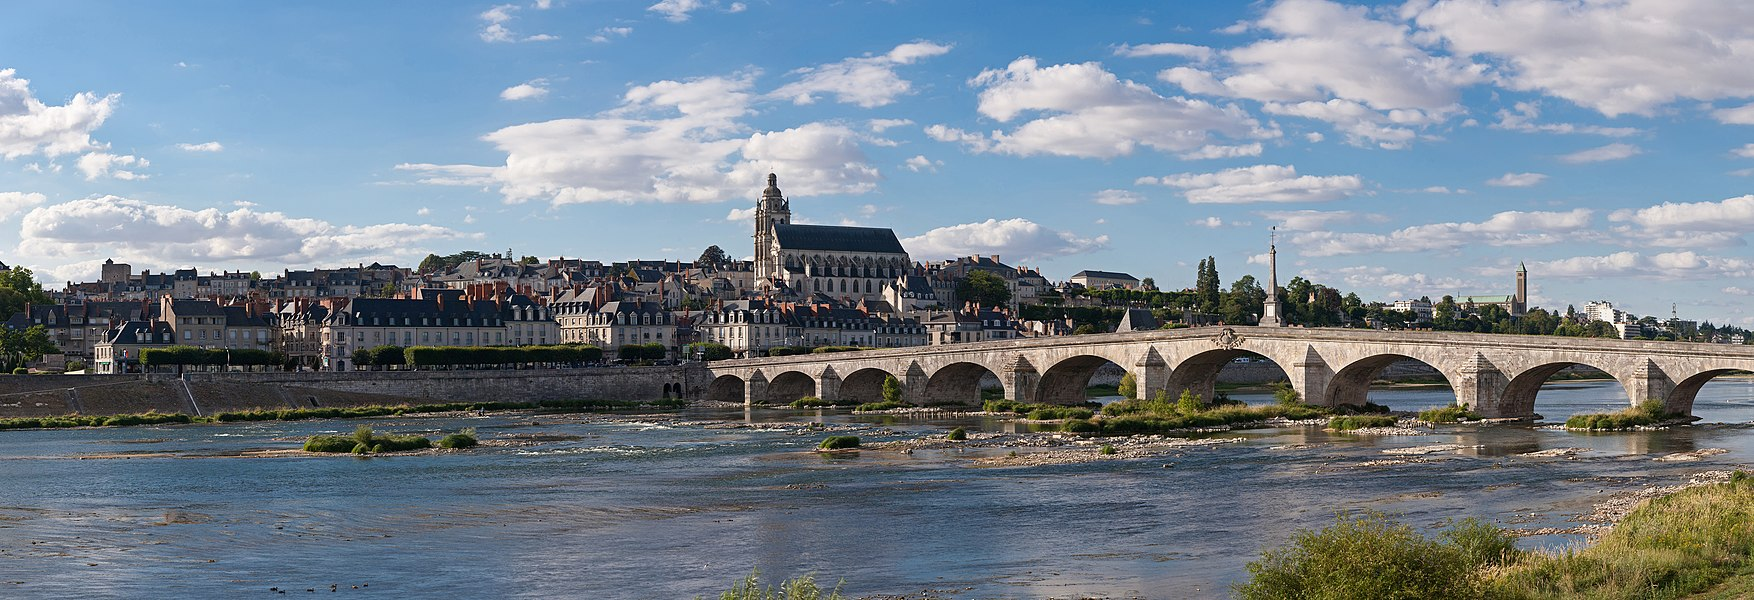 A 28 segment (2 x 14) panoramic view of Blois as viewed from the south-east on the far side of the Loire River.